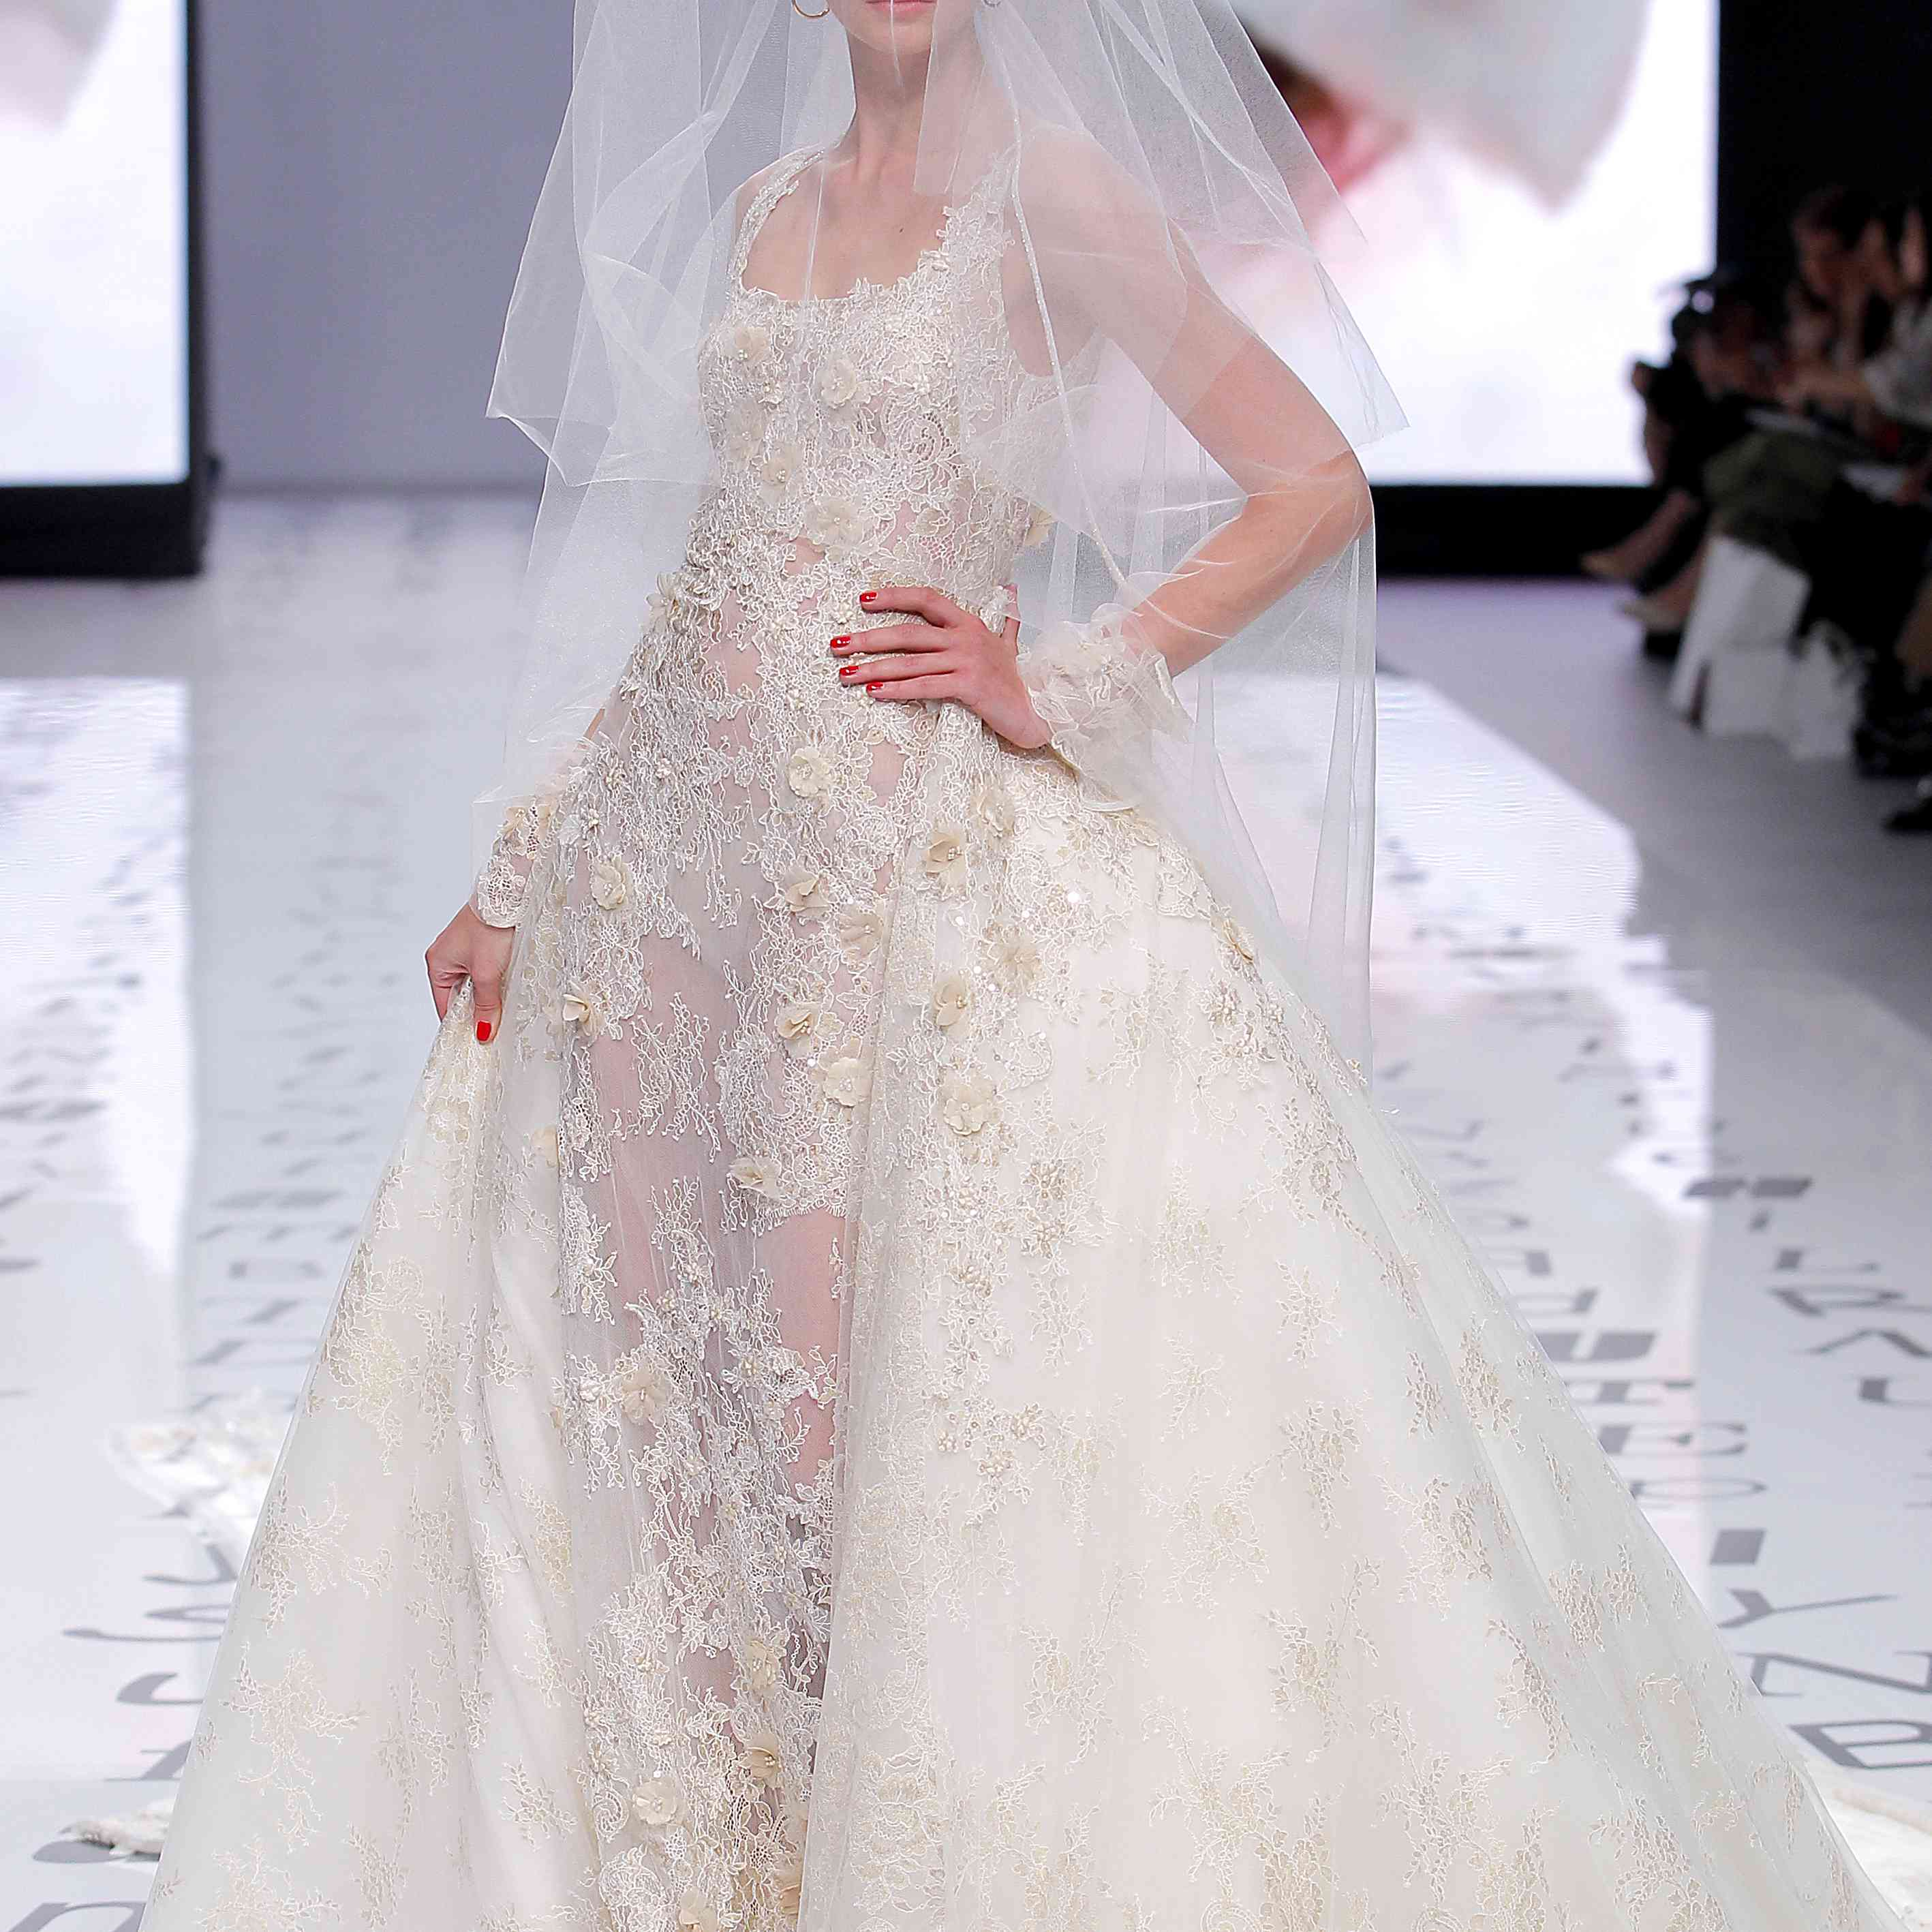 Model in a mermaid dress embroidered with sequins and 3D flowers in nude tones and a removable overskirt with layers of tulle and lace